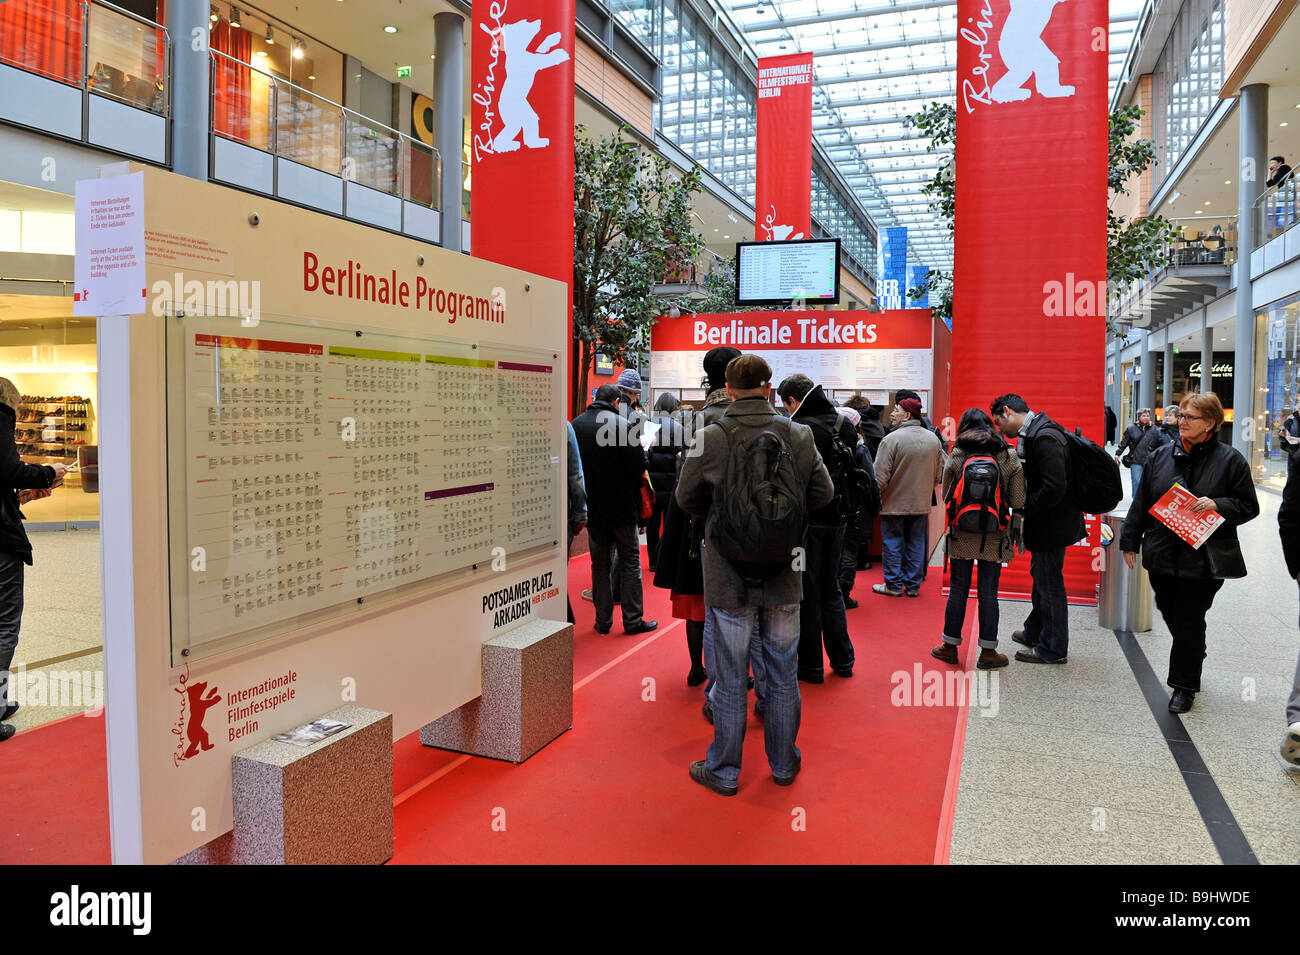 Visitors of the Berlinale buying tickets for the cinema, reading the program, Berlin, Germany, Europe - Stock Image